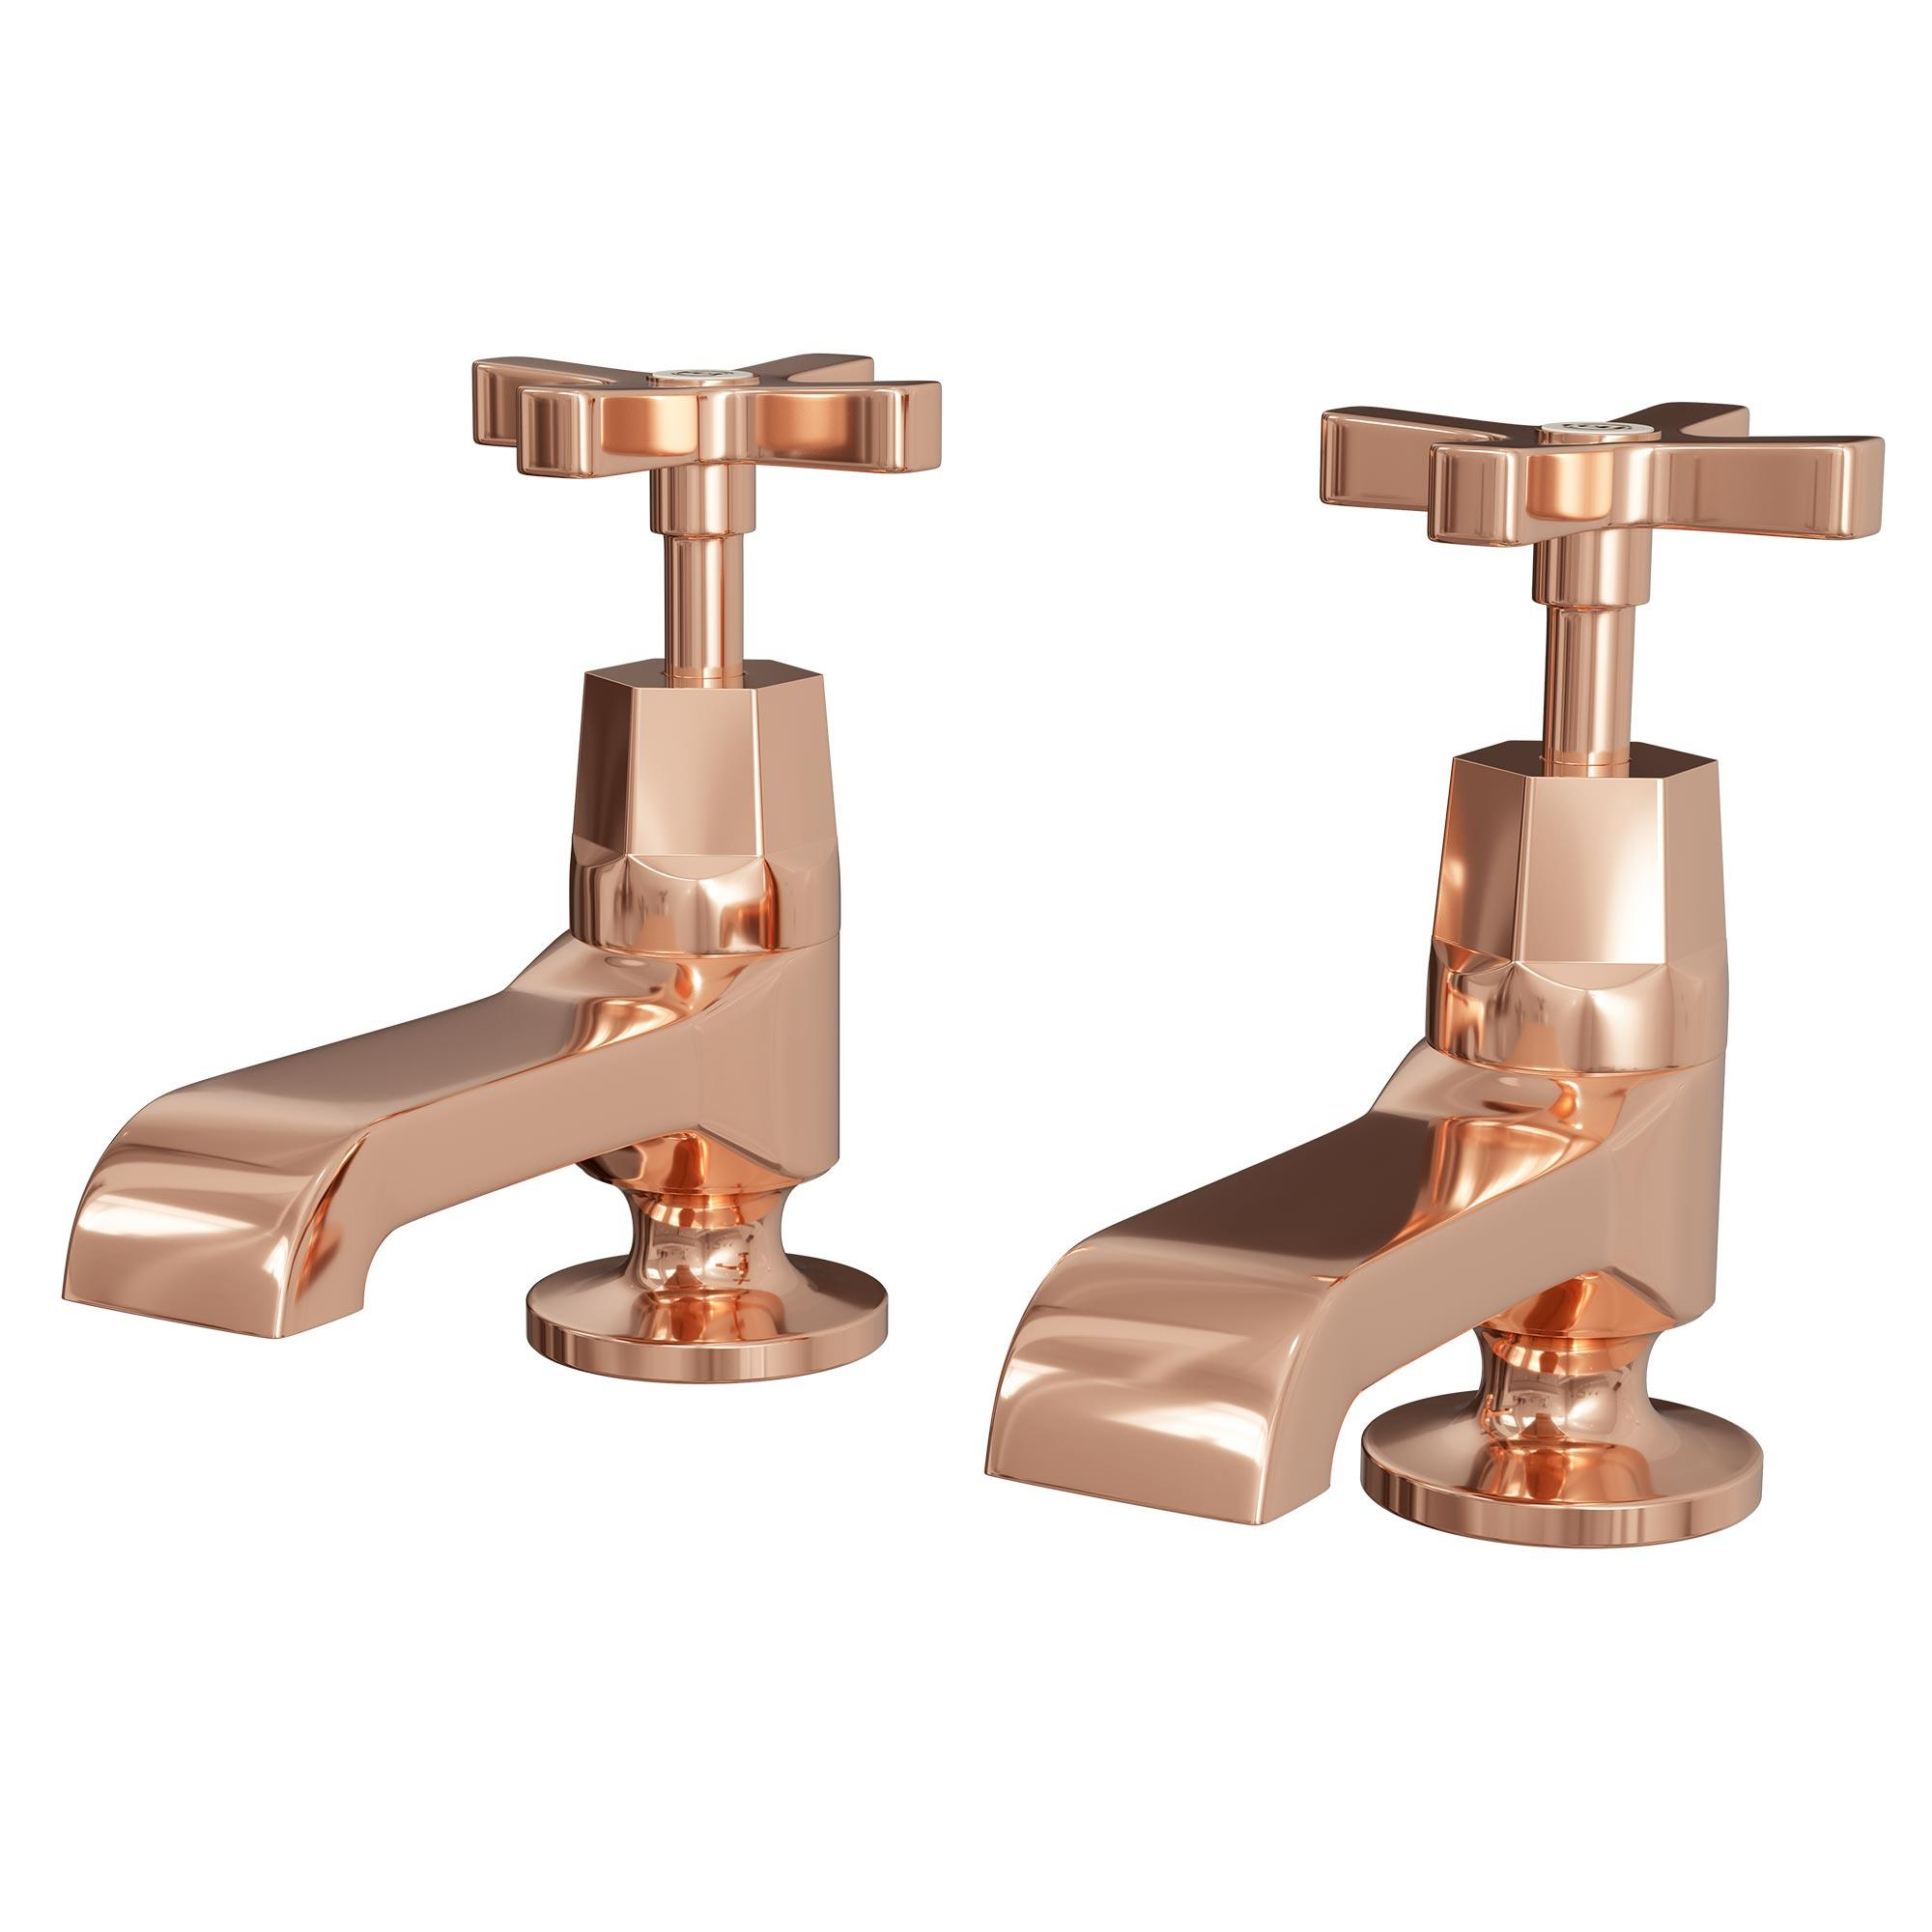 Rose Gold Art Deco Basin Taps with Waste - Heat & Things